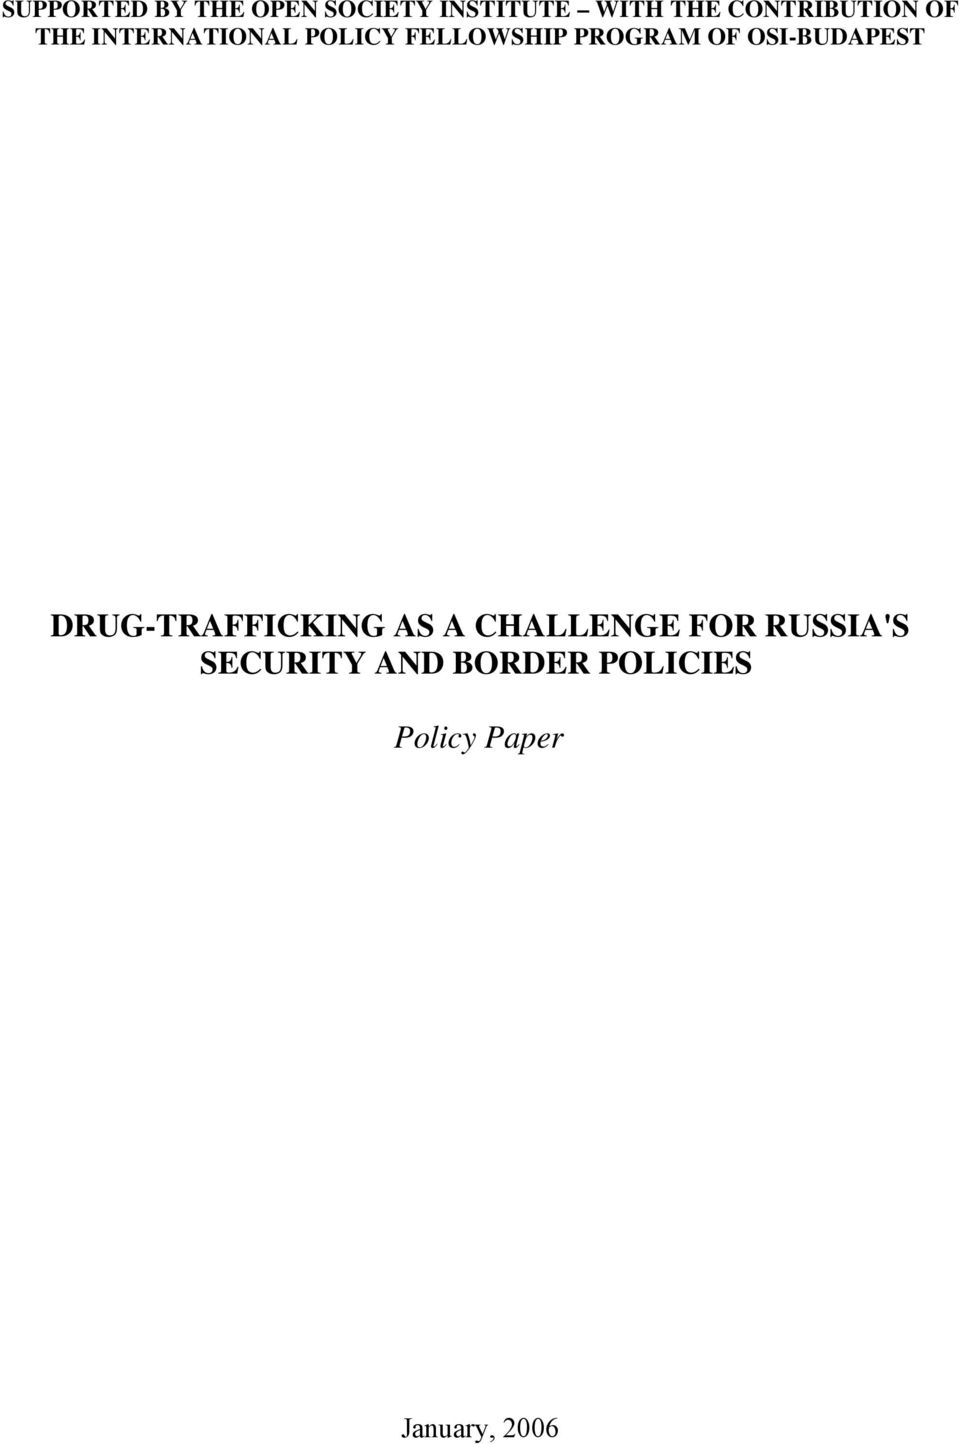 PROGRAM OF OSI-BUDAPEST DRUG-TRAFFICKING AS A CHALLENGE